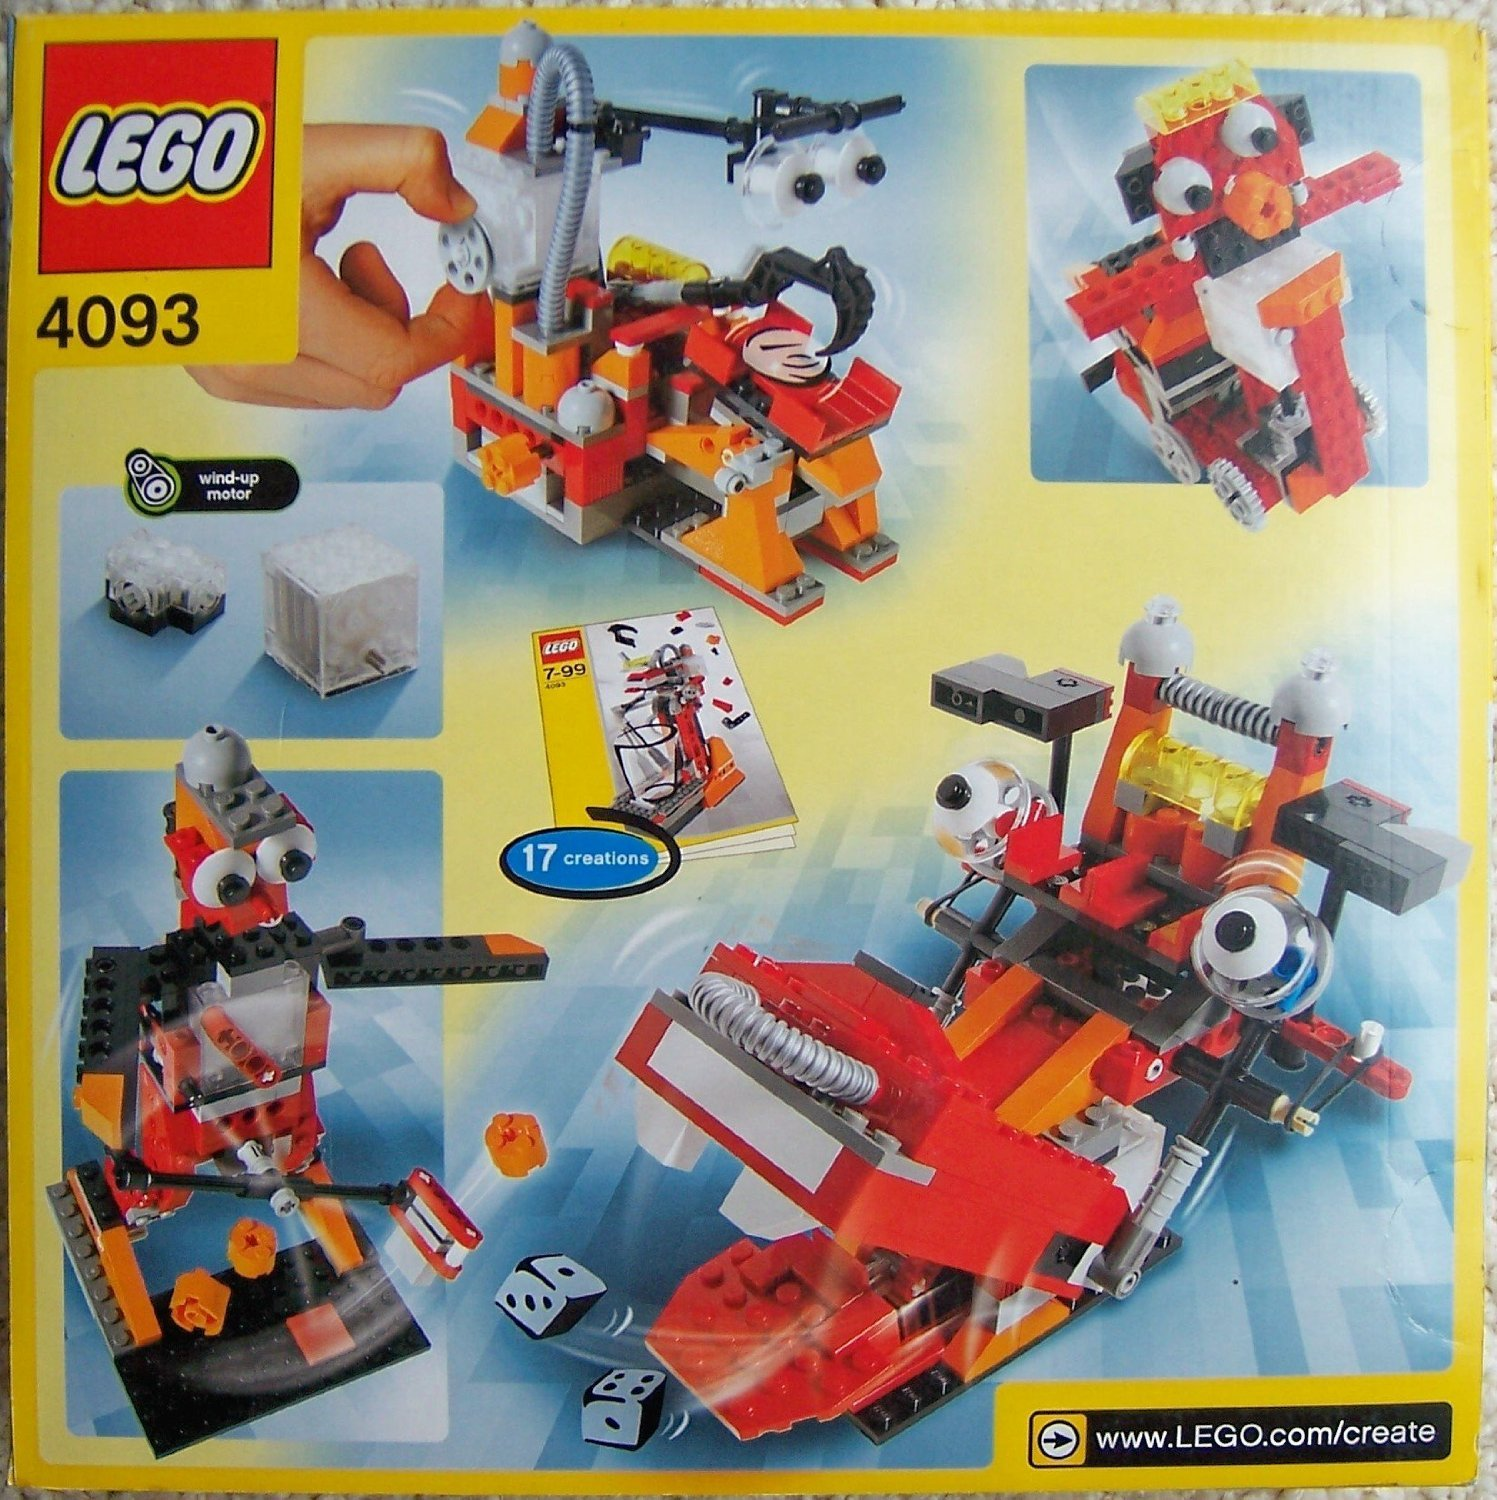 LEGO ( LEGO ) Inventor 4093 Wild Wind-up toy block ( parallel imports )